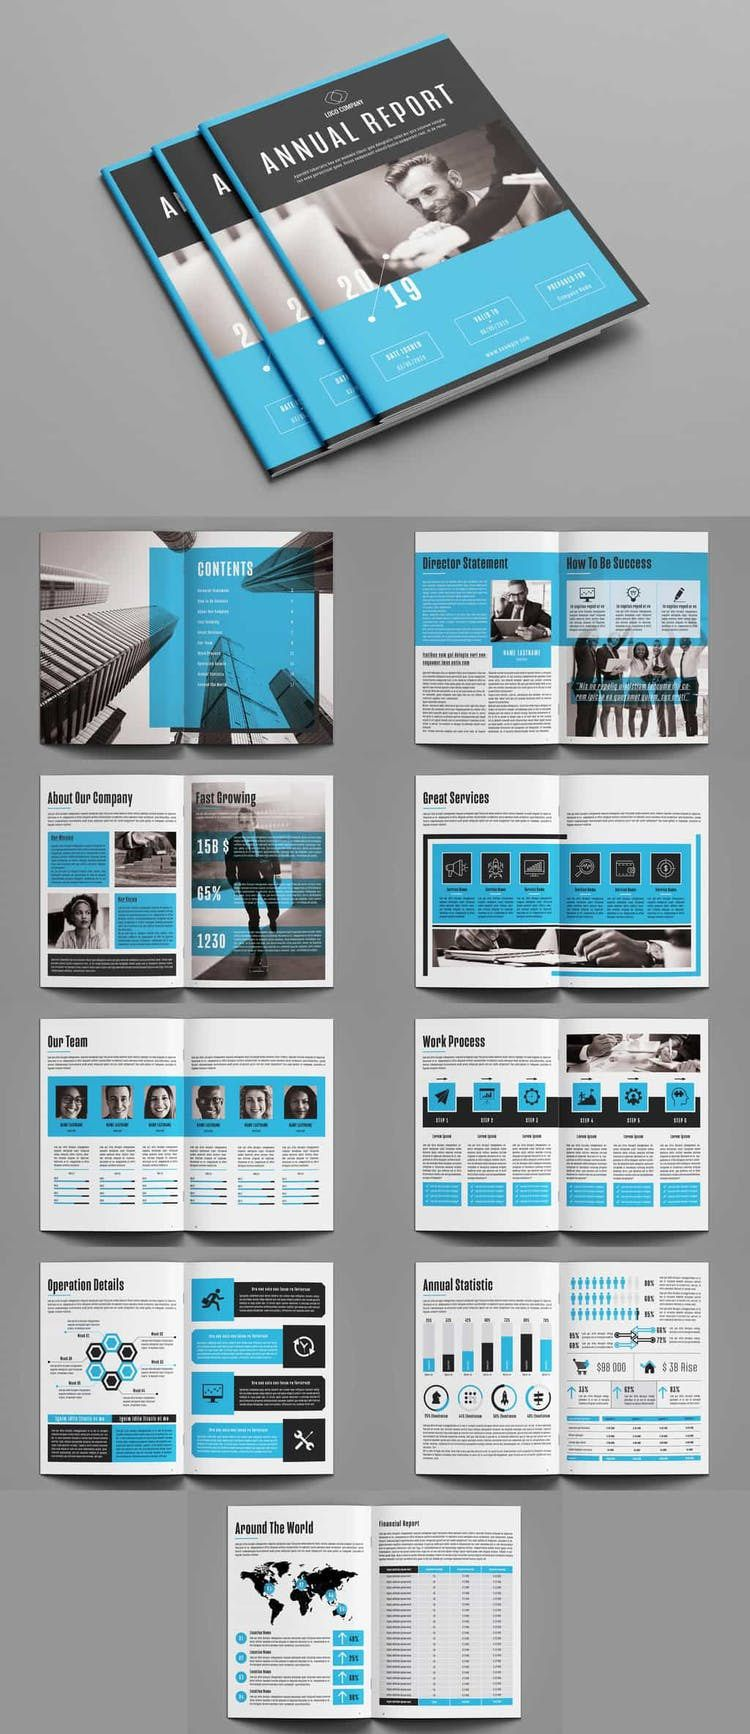 004 Shocking Annual Report Design Template Idea  Templates Word Timeles Free Download InFull